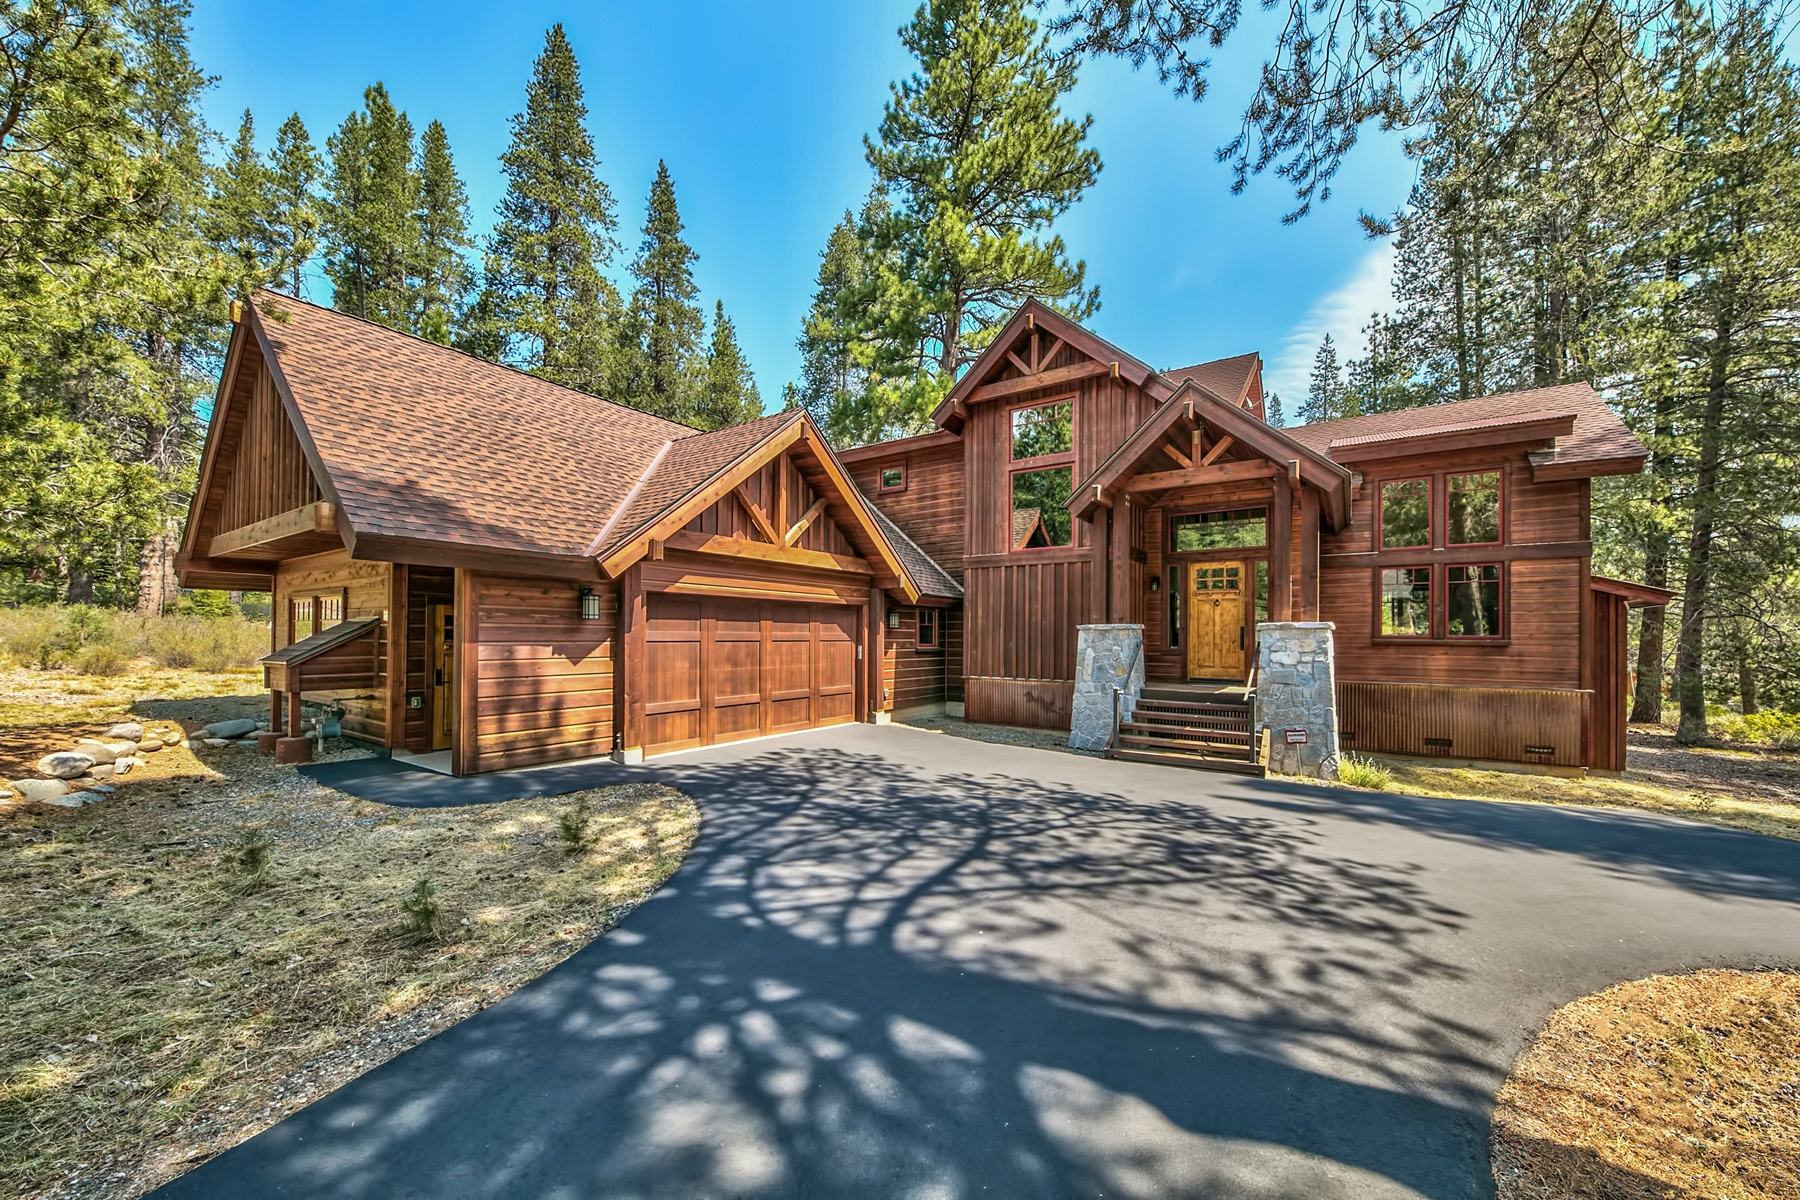 Property for Active at 11891 Bottcher Loop, Truckee, CA 96161 11891 Bottcher Loop Truckee, California 96161 United States